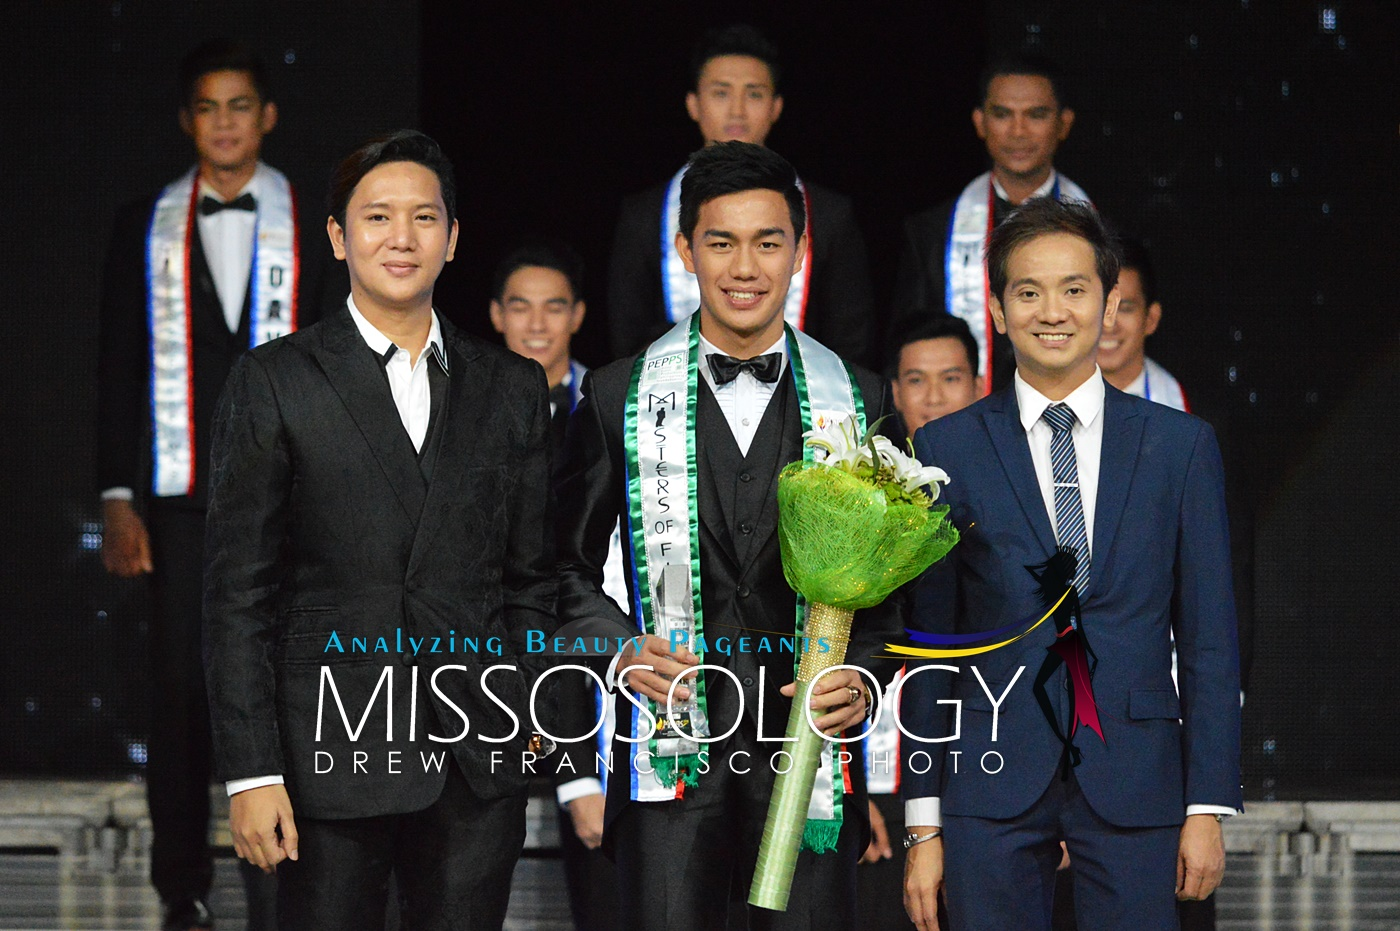 Christopher Dulagan is Man of the World Philippines 2016